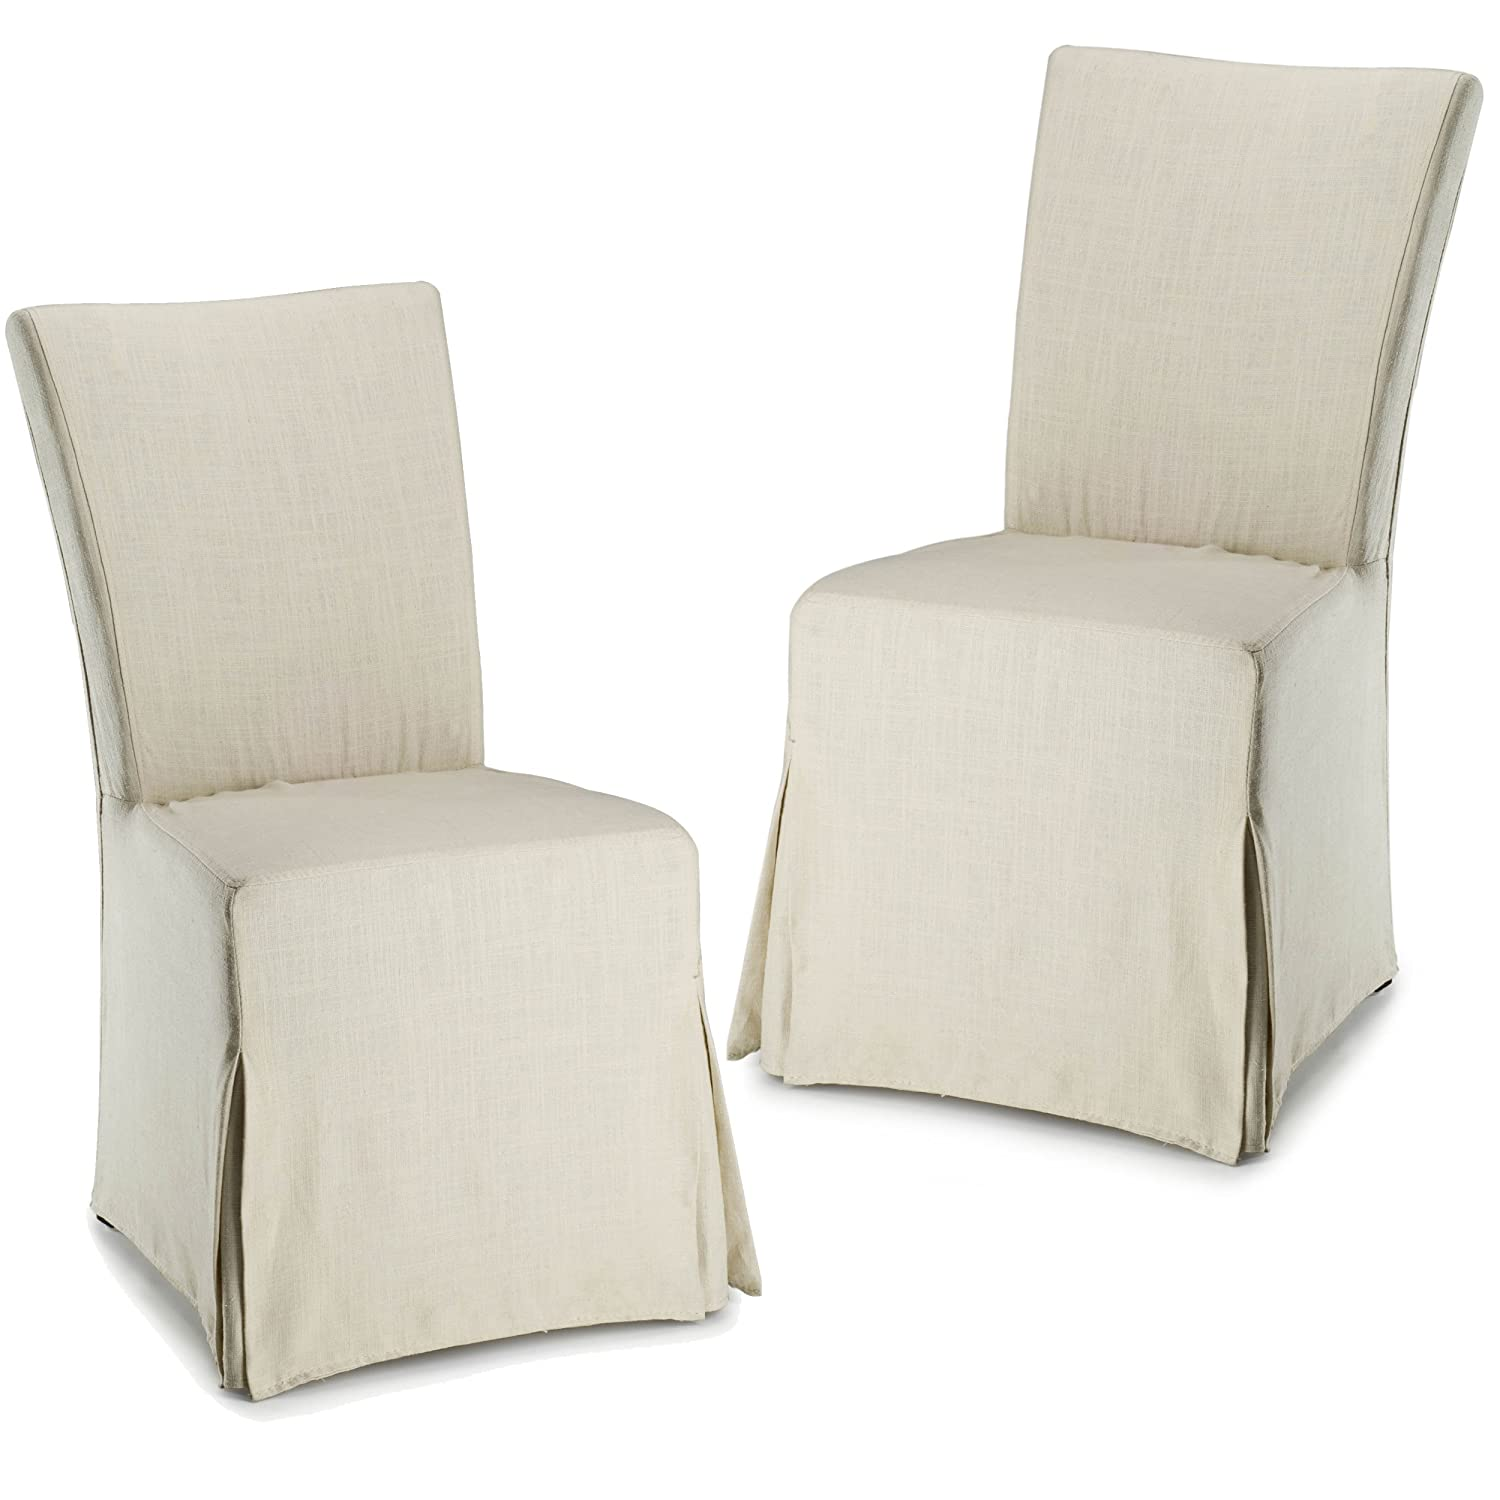 Amazon com safavieh hud4207a set2 hudson collection ella linen slipcover side chairs set of 2 beige kitchen dining